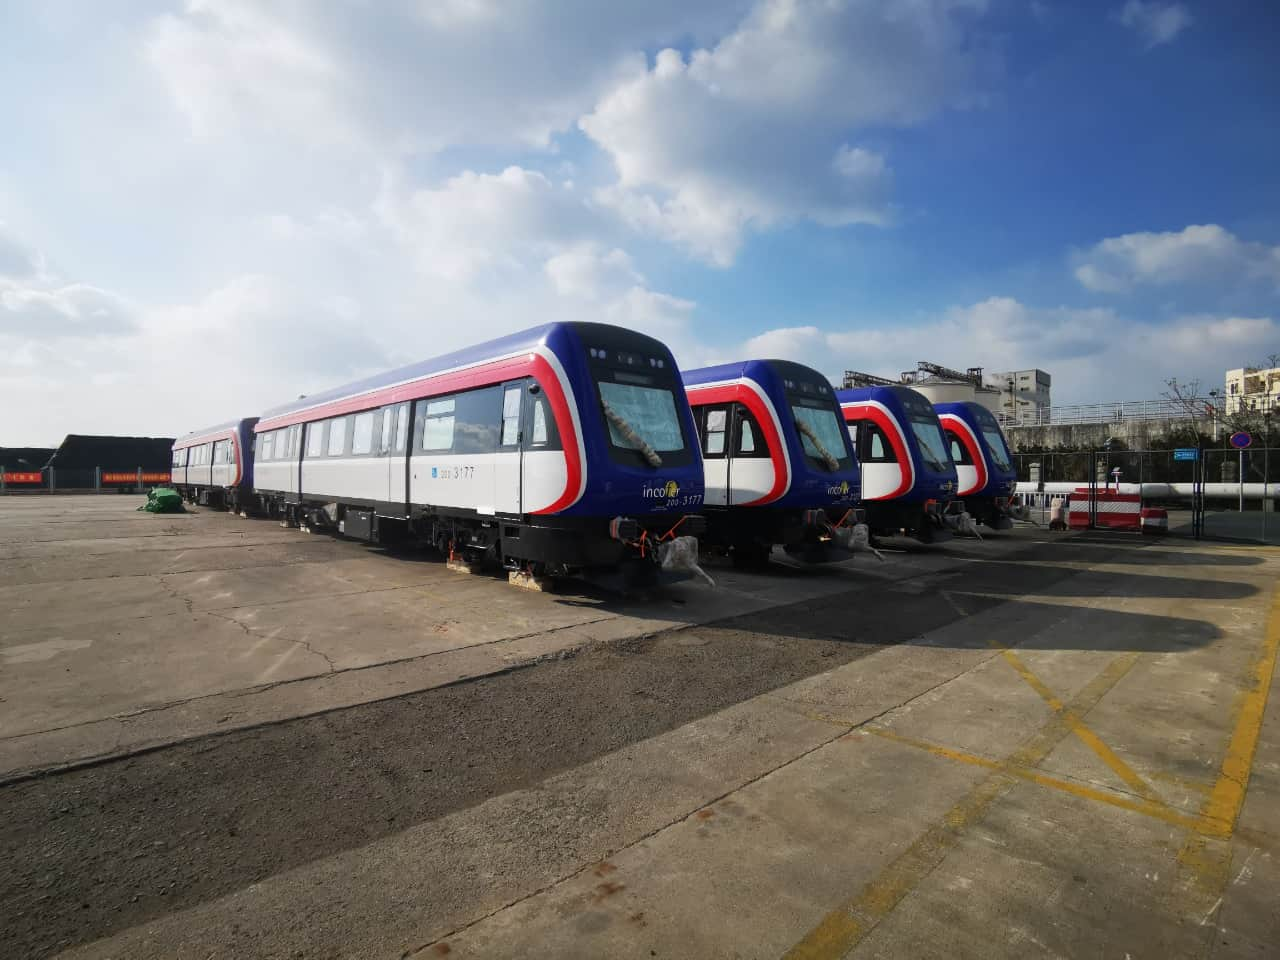 New diesel trains with better capacity and air condition are en route to Costa Rica.